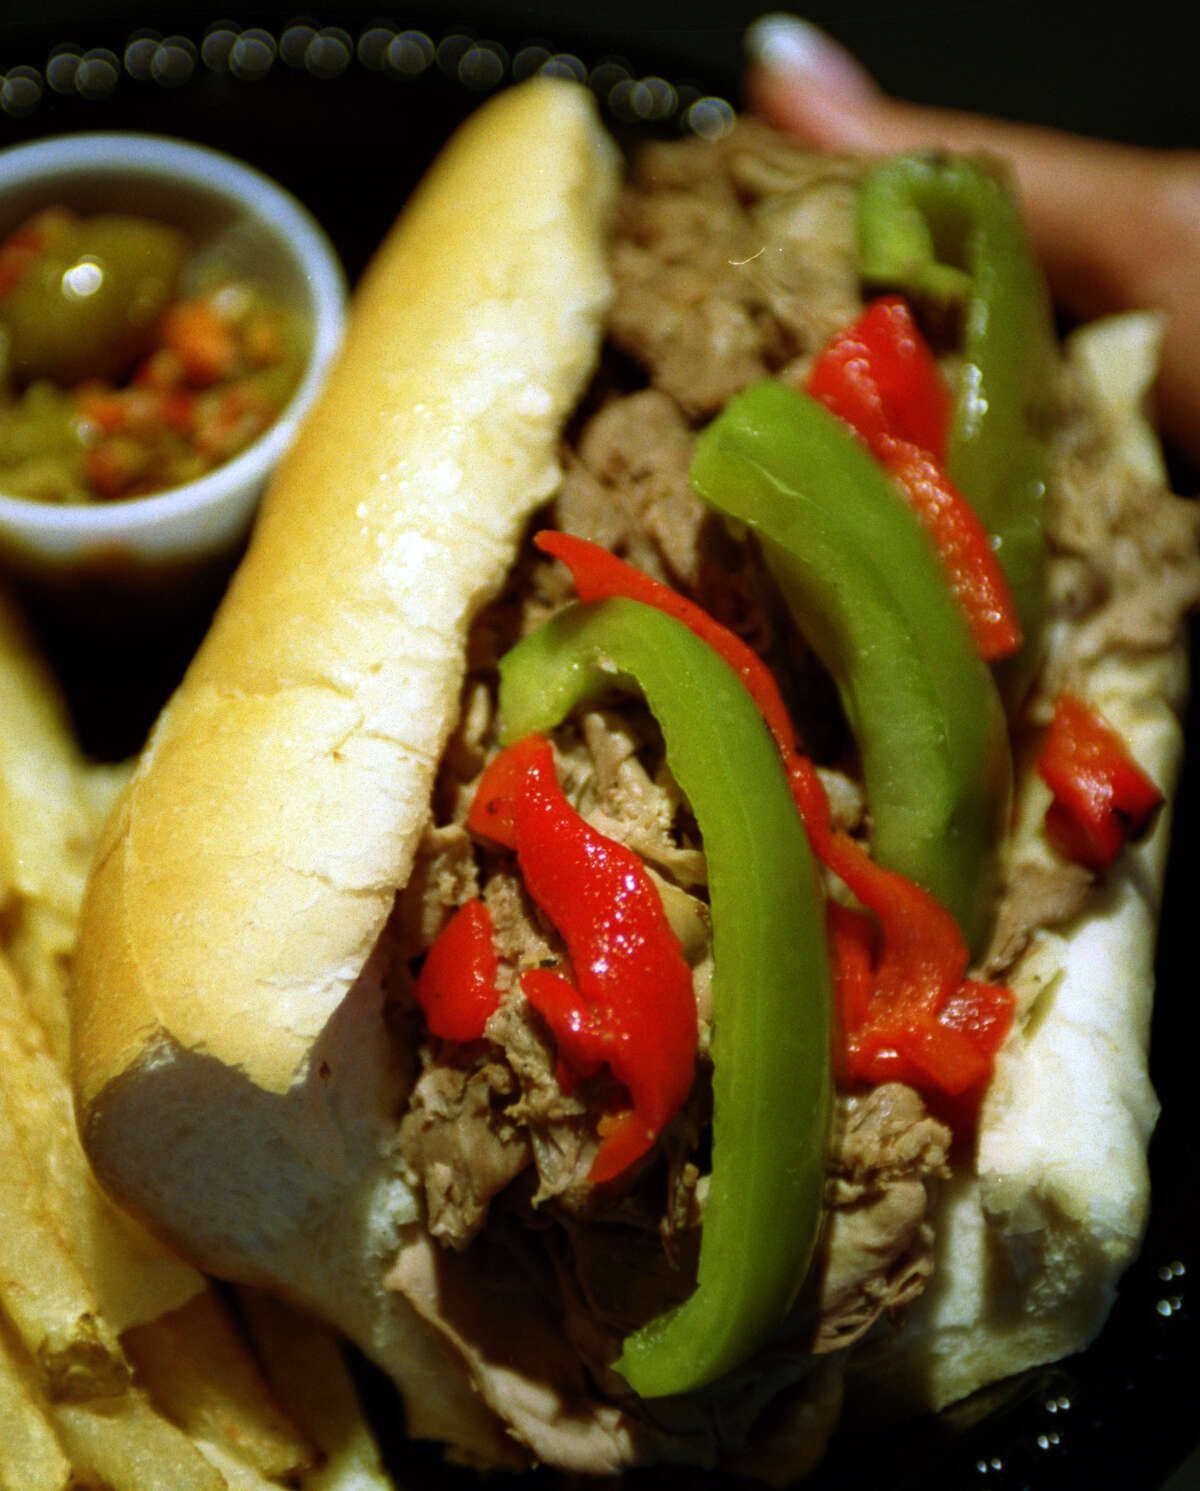 Italian beef sandwiches. SFGATE polled readers through social media, asking what's missing from the S.F. food scene, and this Chicago staple was the second-most requested item after